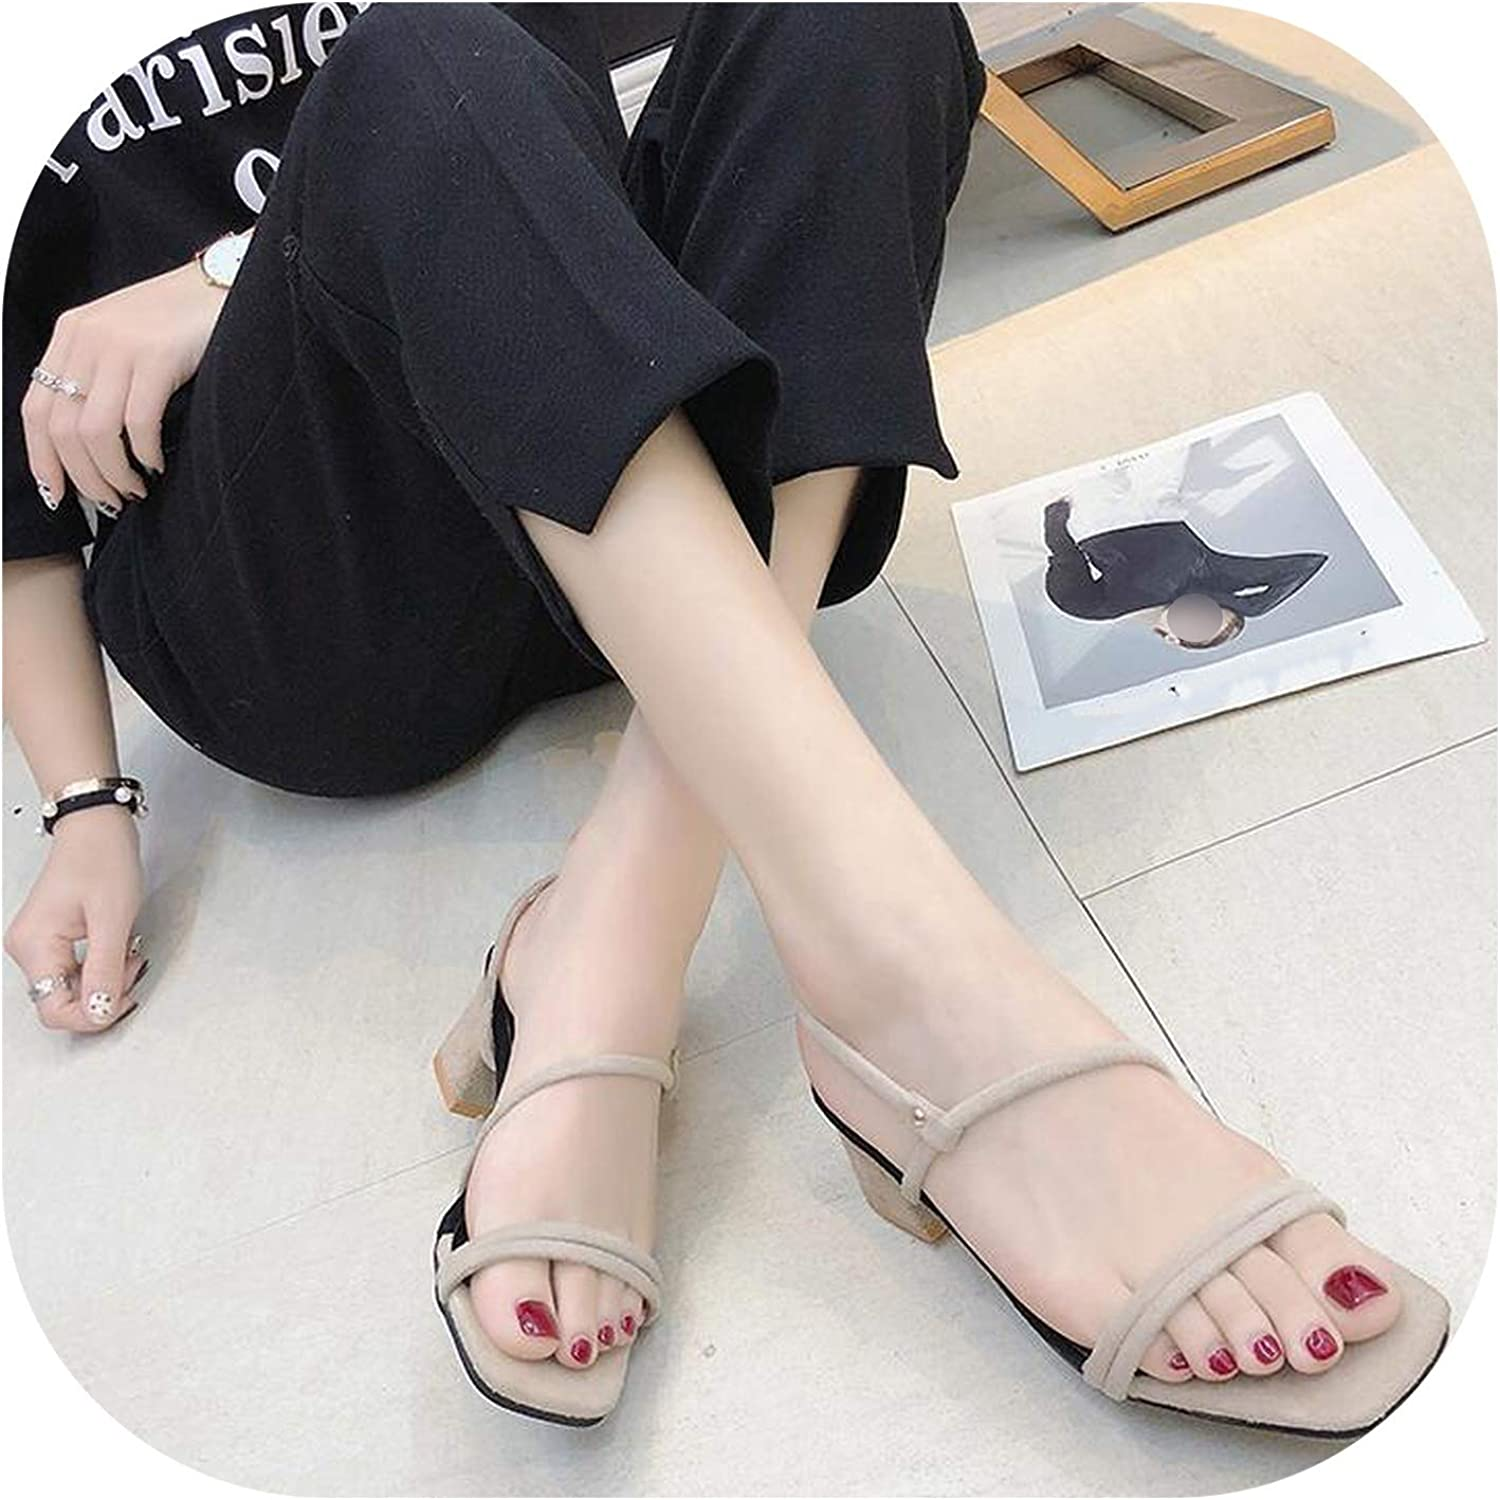 Gooding Day Women Sandals Suede Square Heels Peep Toe Buckle Strap Women's Fashion Summer shoes